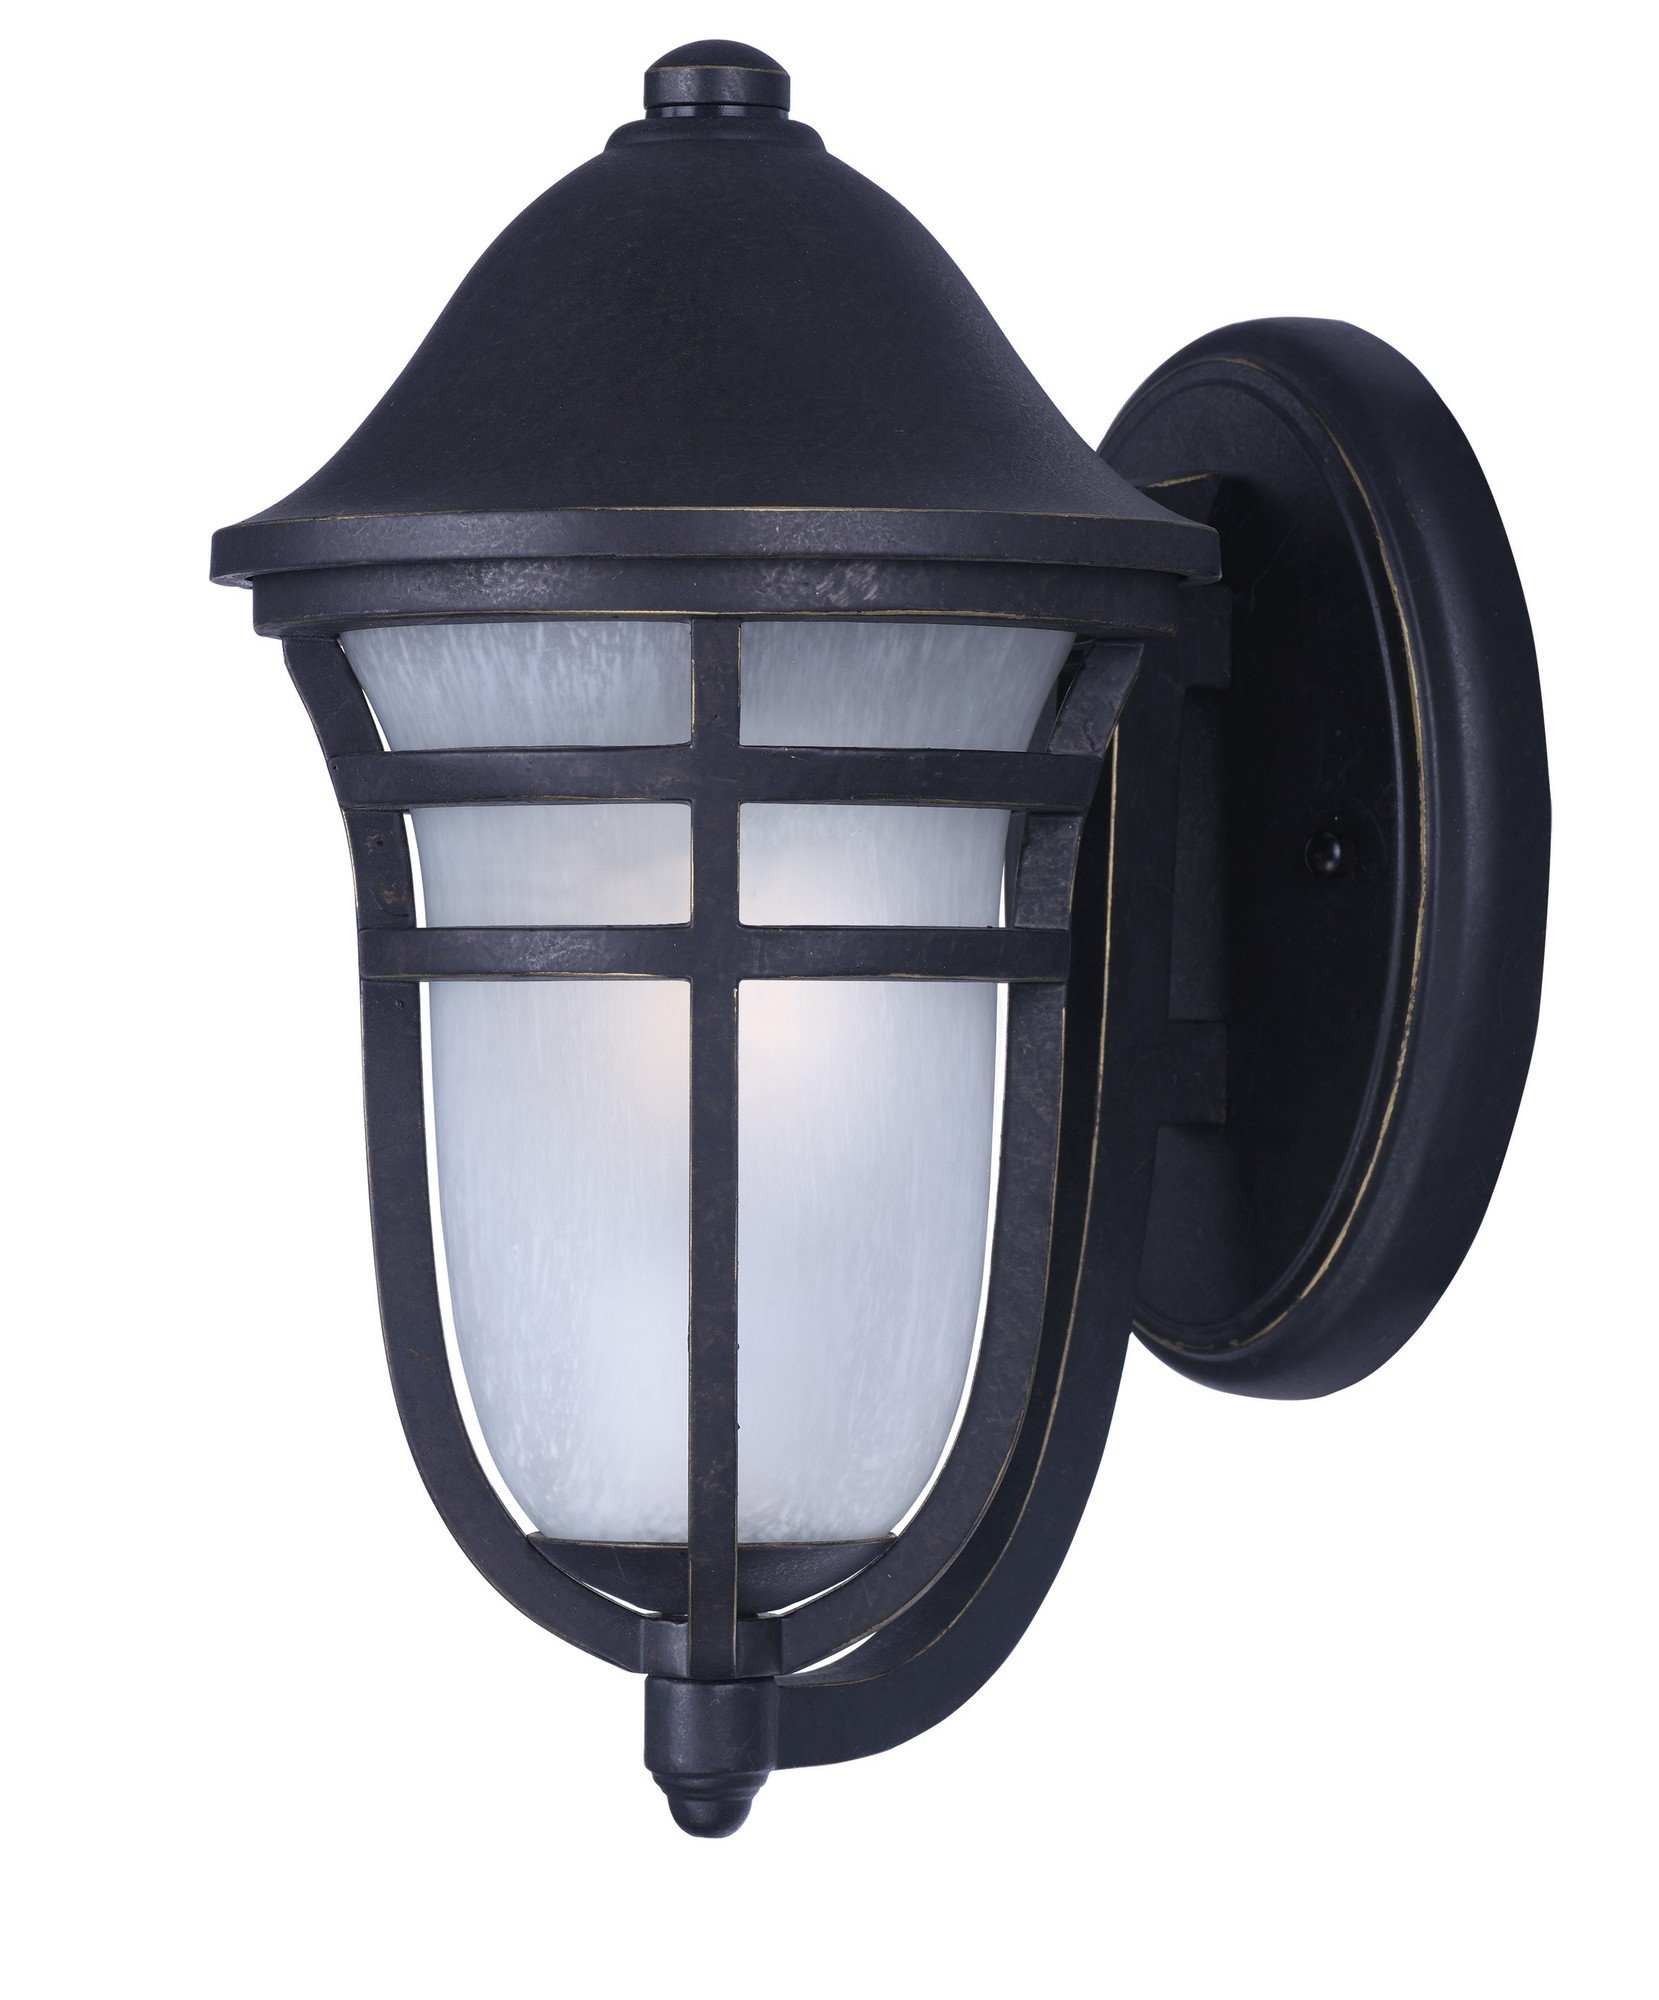 Maxim 34202WPAT Westport DC 1-Light Outdoor Wall, Artesian Bronze Finish, Wisp Glass, MB Incandescent Incandescent Bulb , 9W Max., Wet Safety Rating, 3000K Color Temp, Shade Material, 800 Rated Lumens